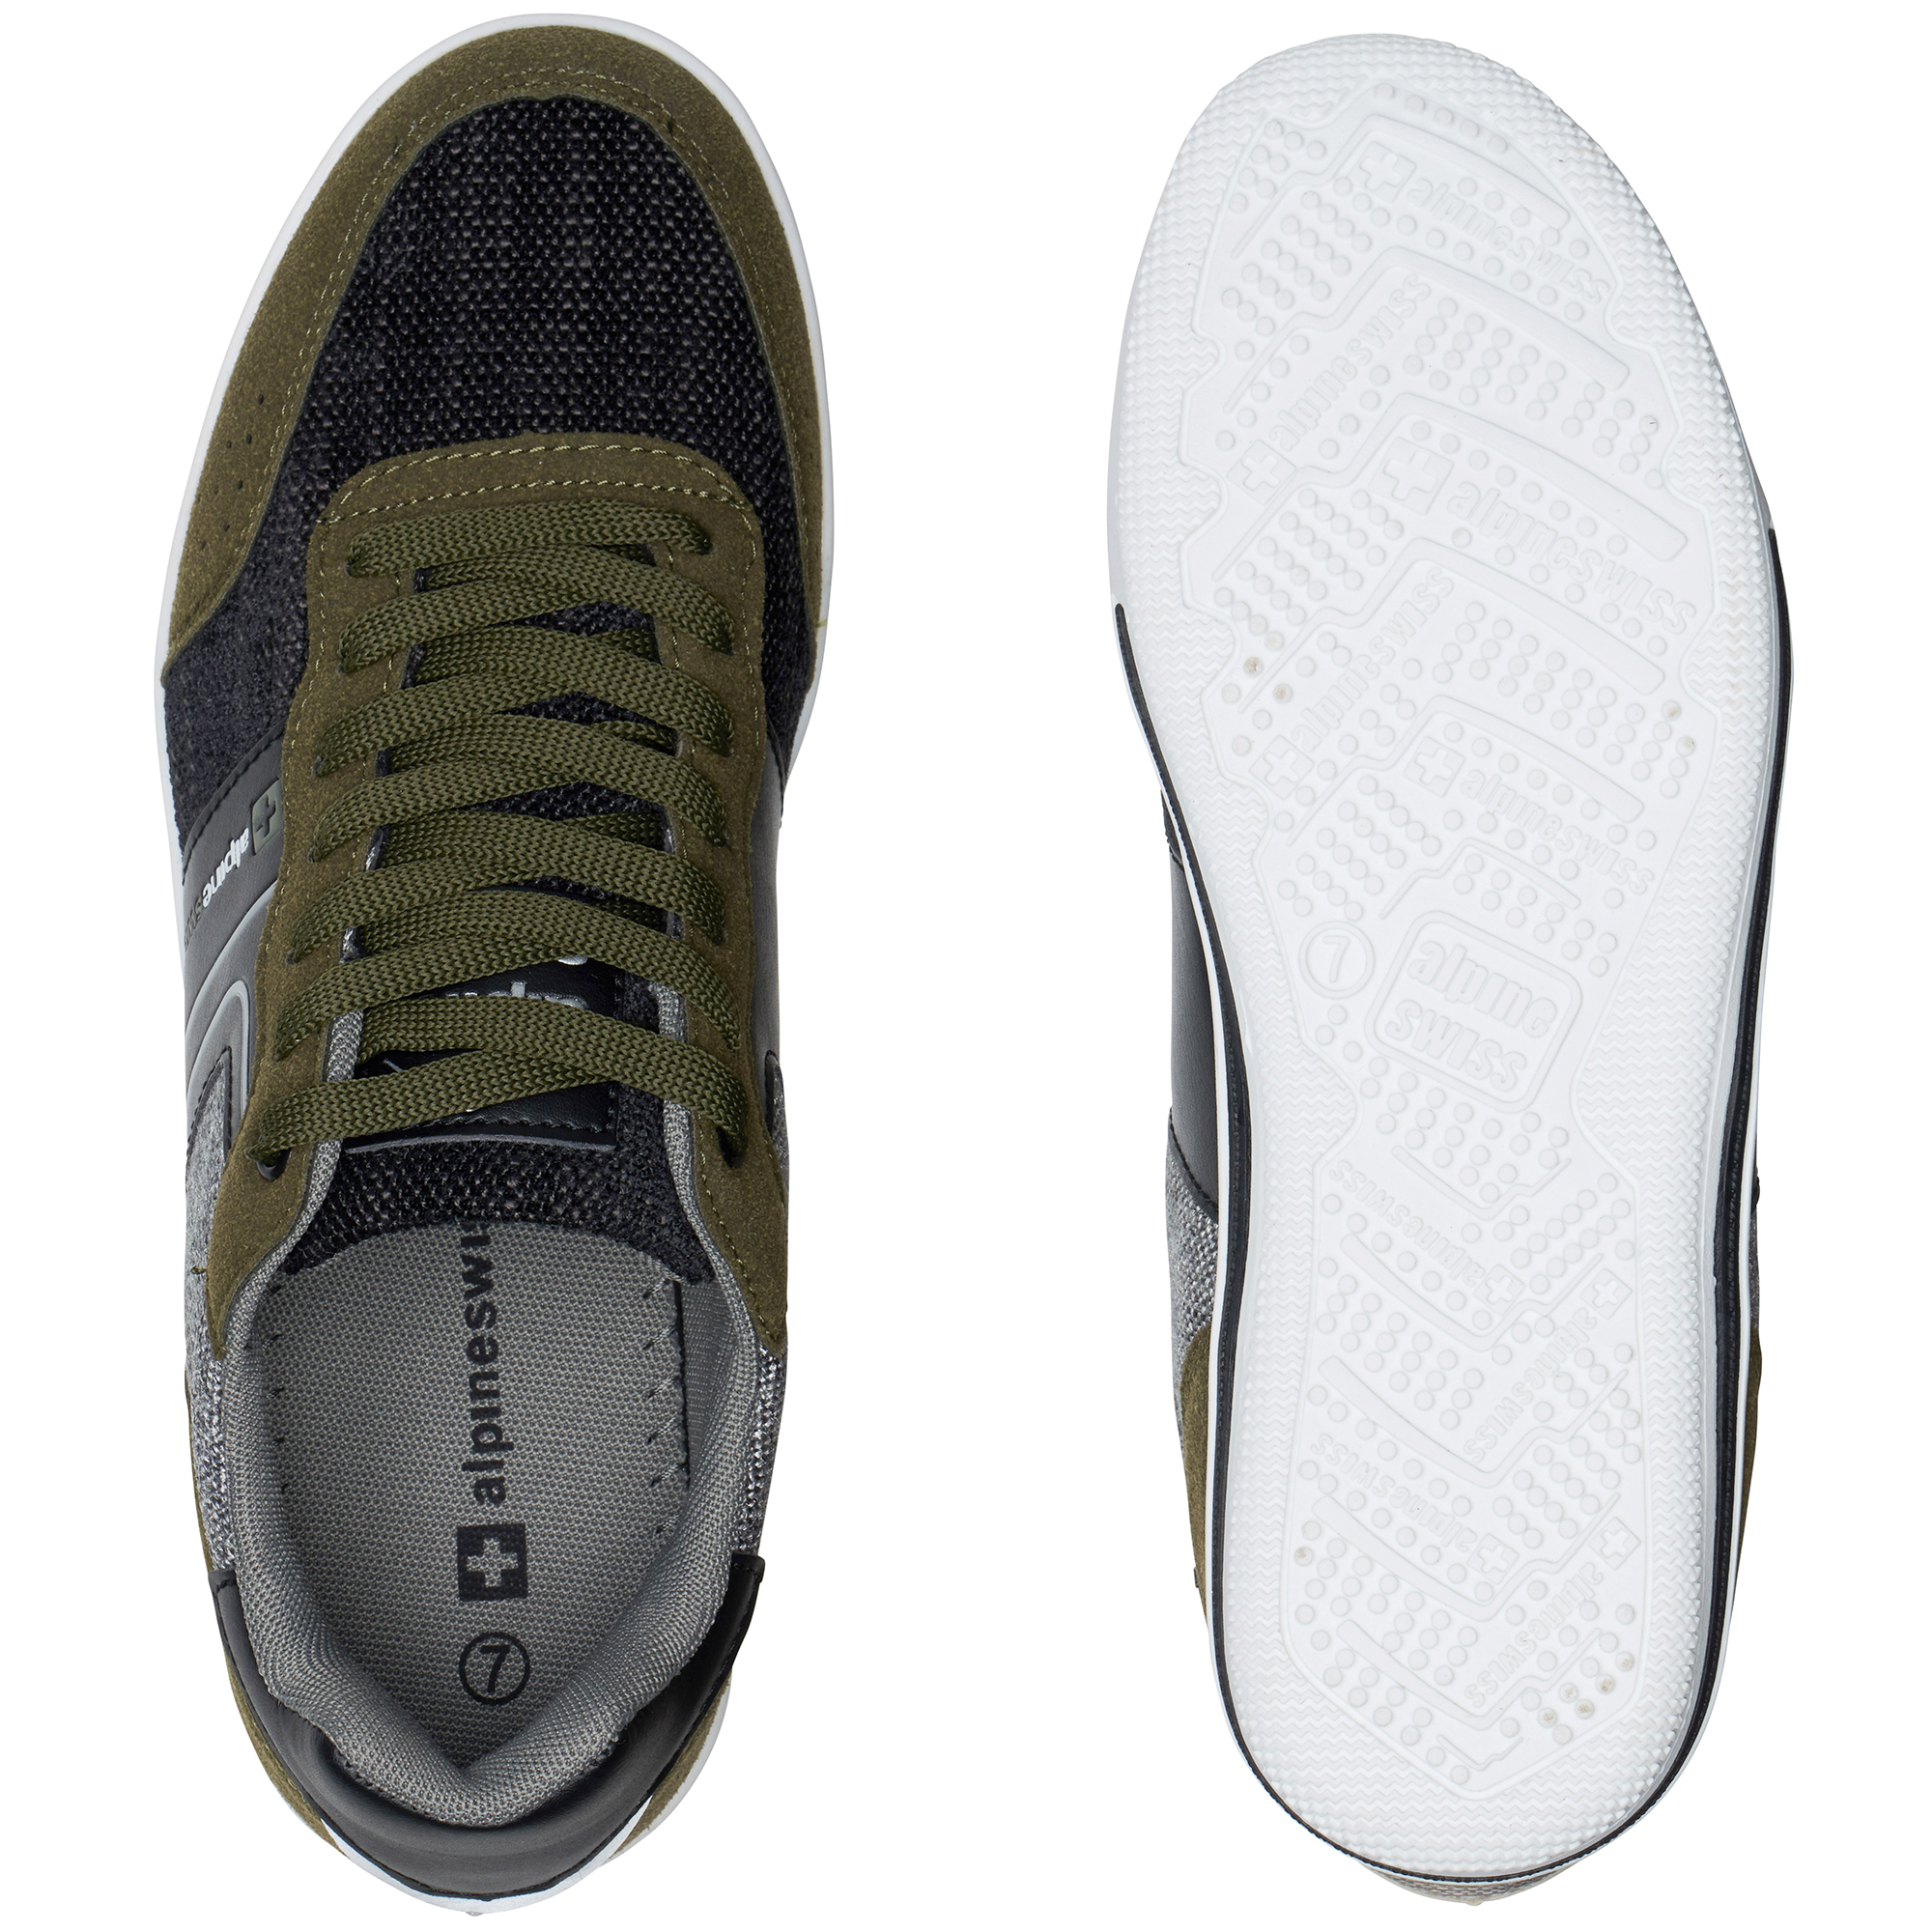 Alpine-Swiss-Liam-Mens-Fashion-Sneakers-Suede-Trim-Low-Top-Lace-Up-Tennis-Shoes thumbnail 44